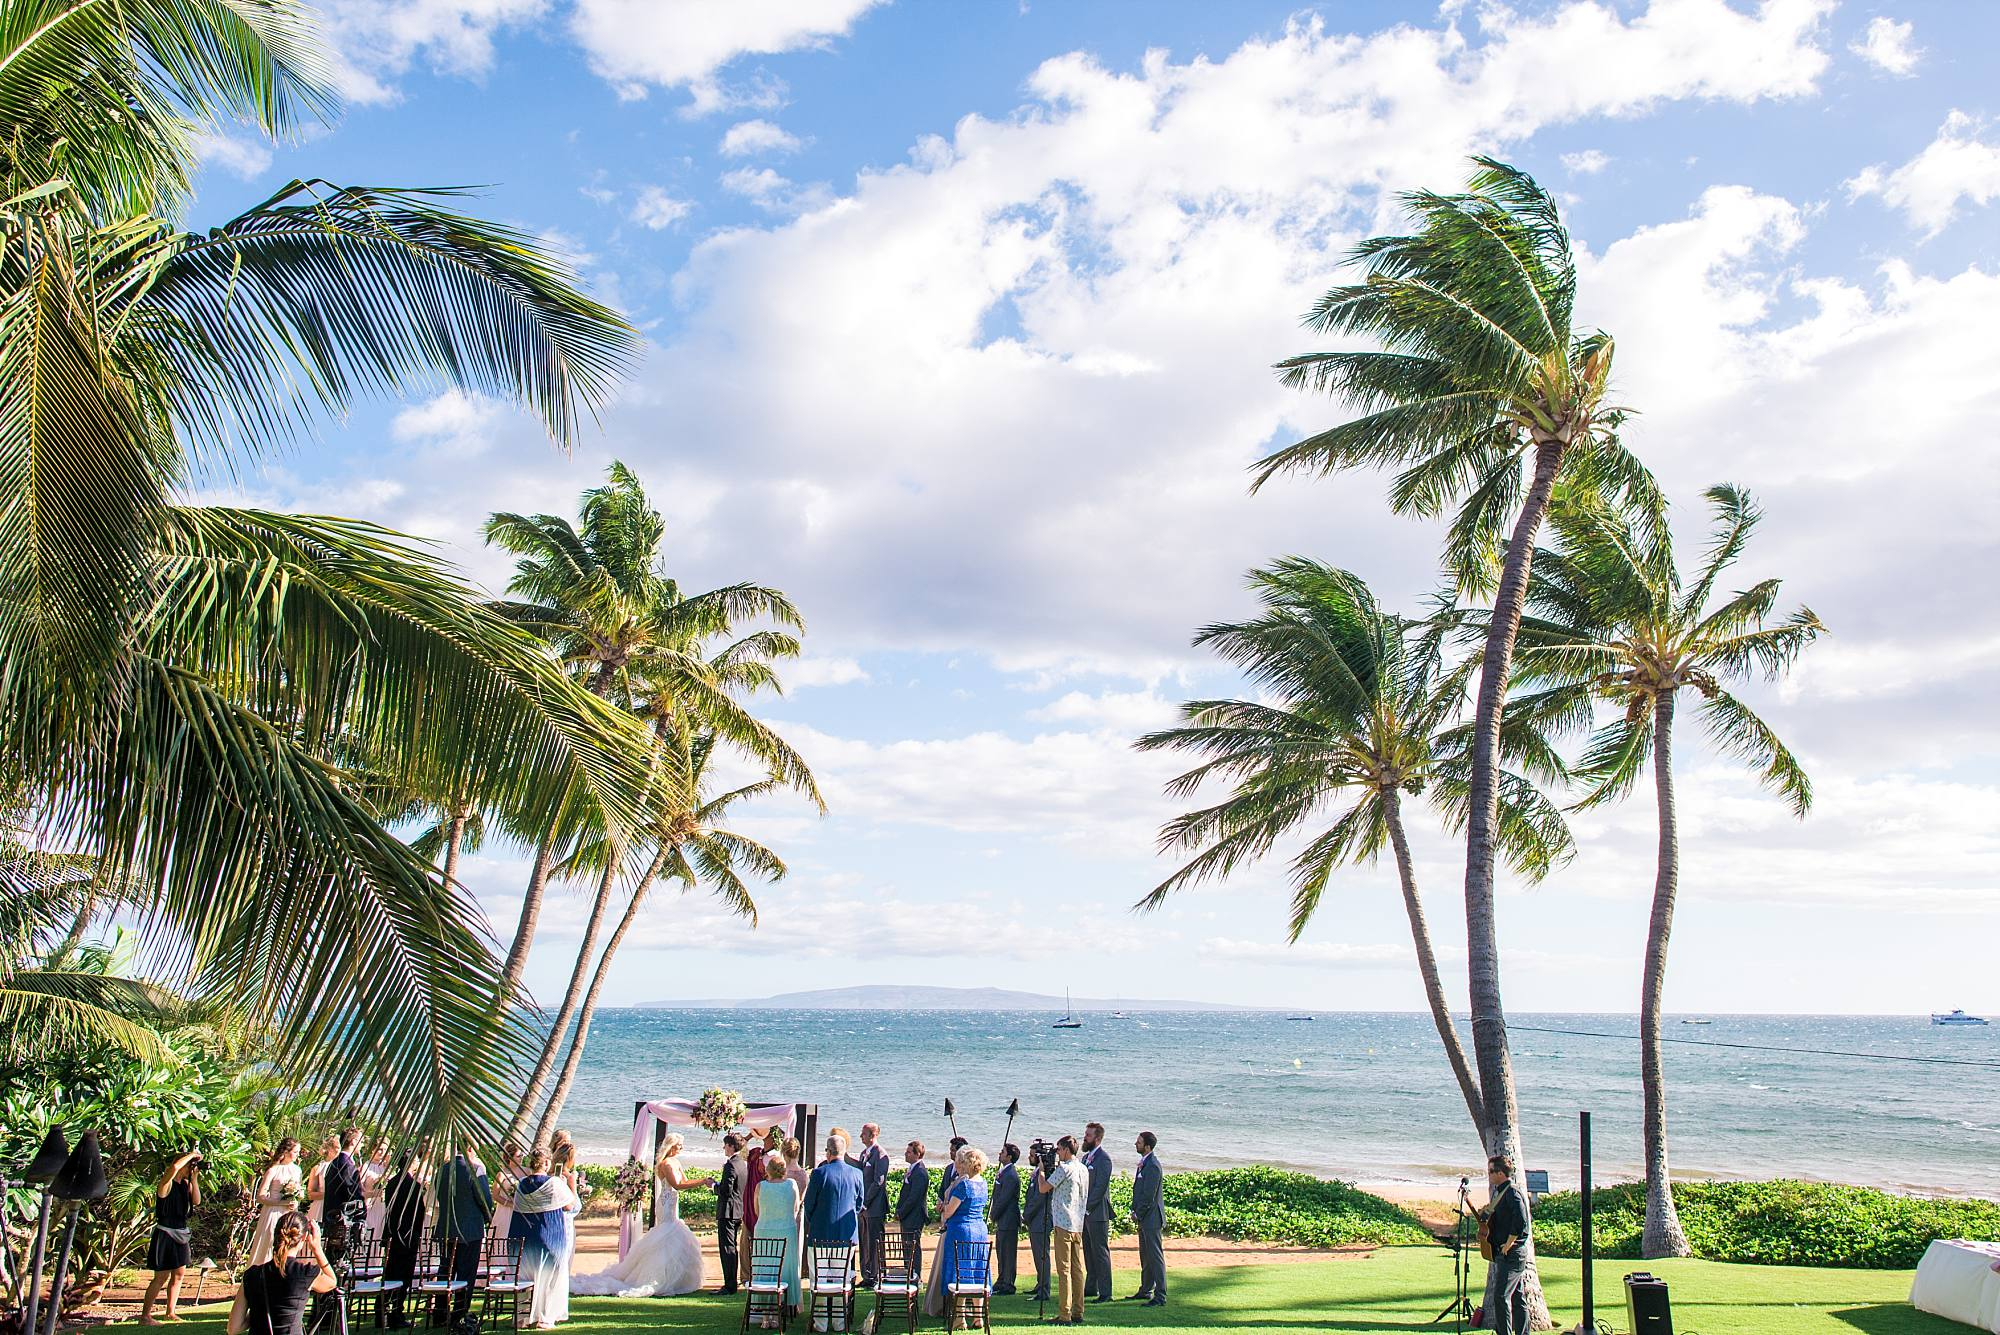 Maui Wedding at the sea shore, all the guests are standing at their chairs as the bride has just come down the aisle. Sun, sea, and palm trees.